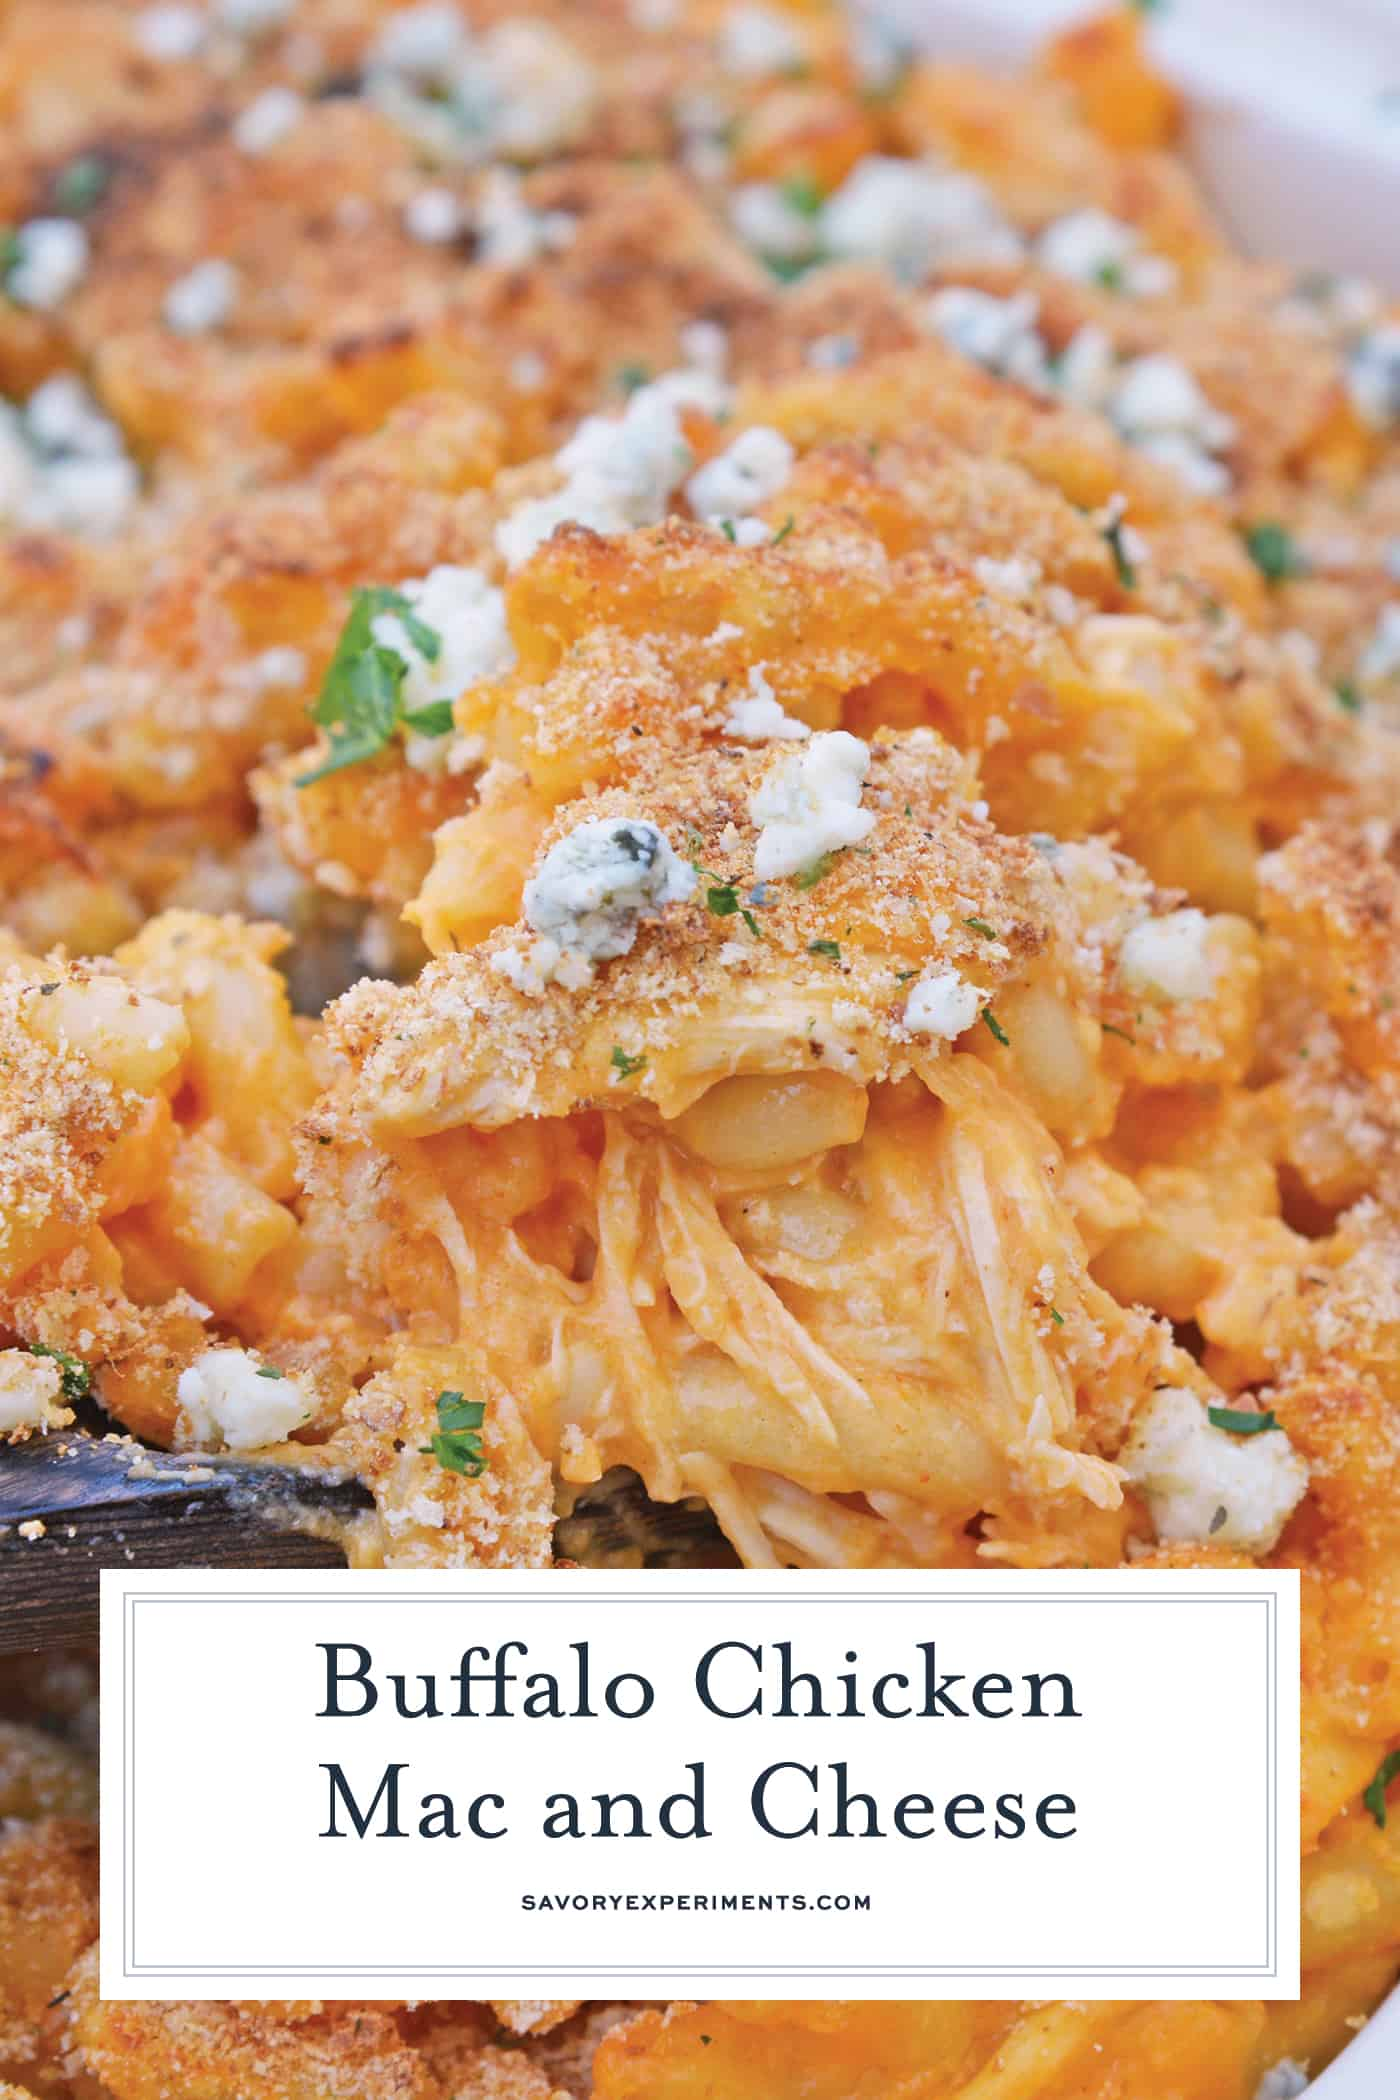 Buffalo Chicken Mac and Cheese is a quick and spicy baked mac and cheese recipe the whole family will love. Perfect as a potluck recipe or for a BBQ side dish! #buffalochickenmacandcheese #macandcheese www.savoryexperiments.com